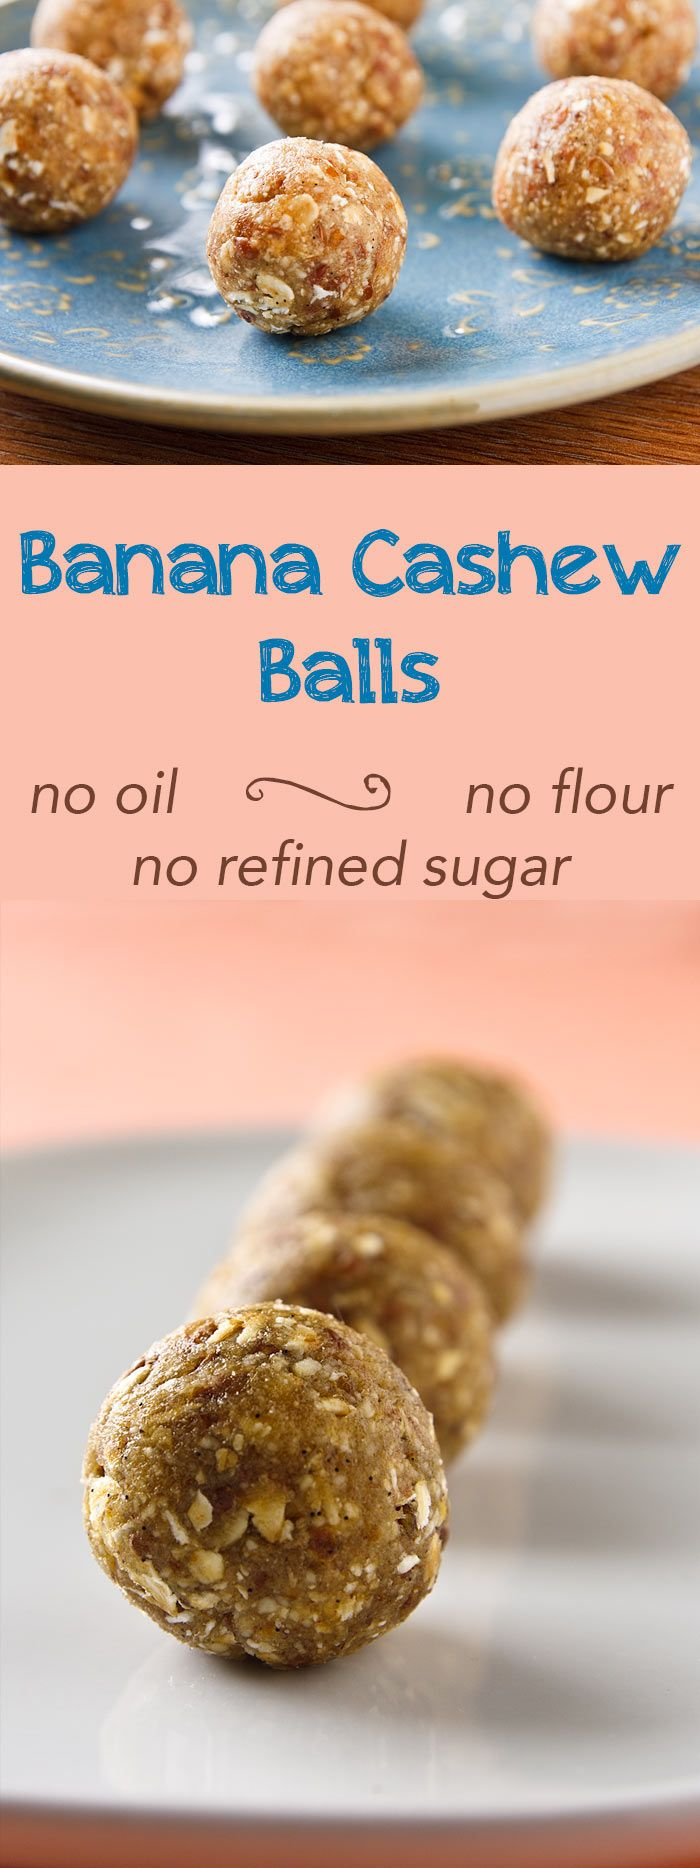 If you like banana Larabars or sun-dried bananas, you'll love these banana-cashew balls. Easy to make, they contain no refined sugar, flour, or oil.